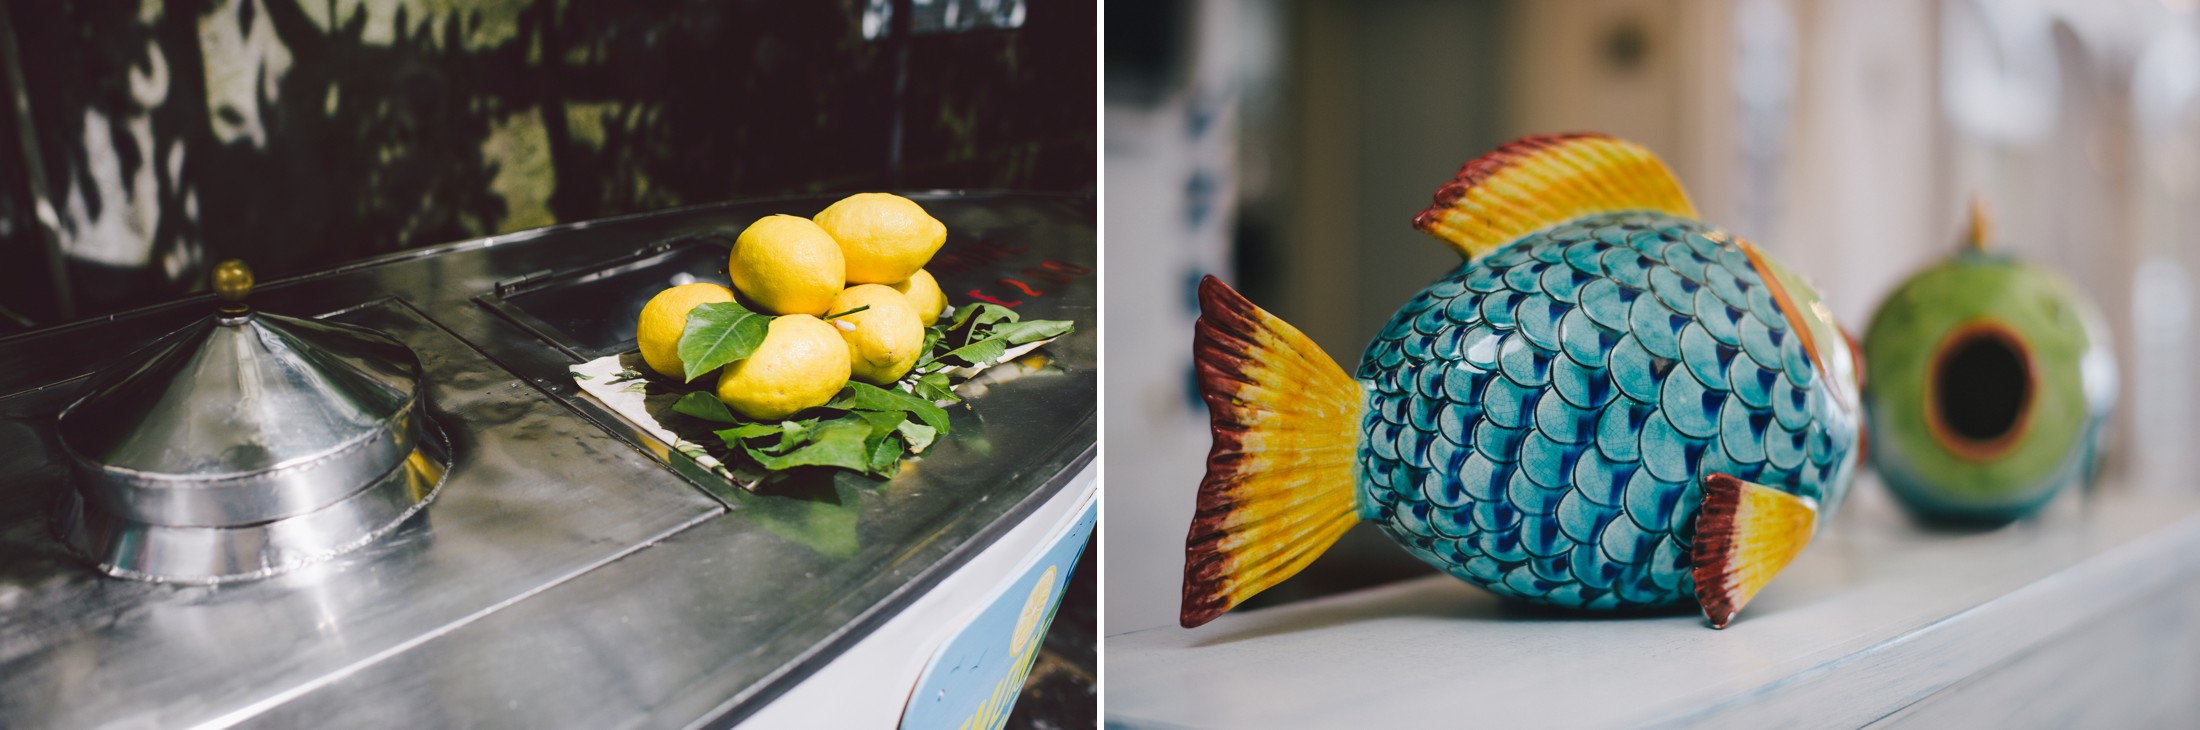 collage lemons ceramic fish wedding in Positano